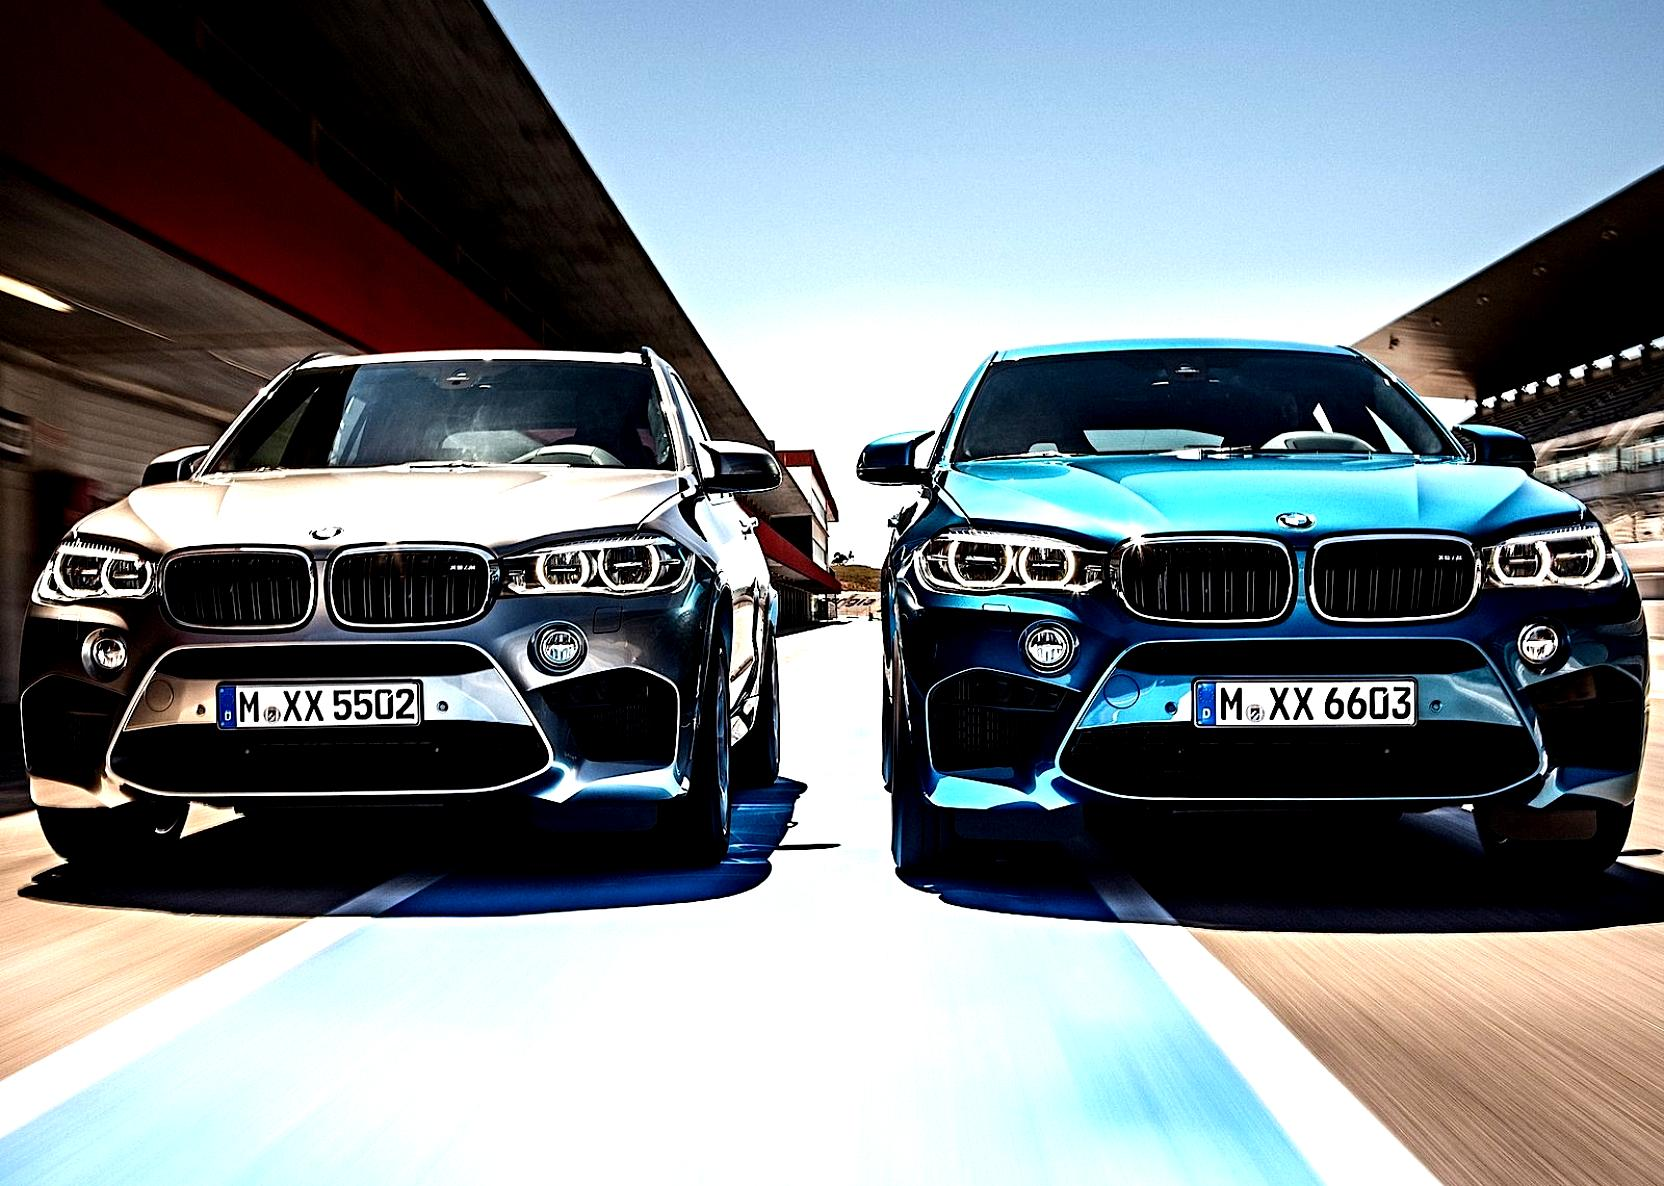 Bmw X6m 2014 On Motoimg Com